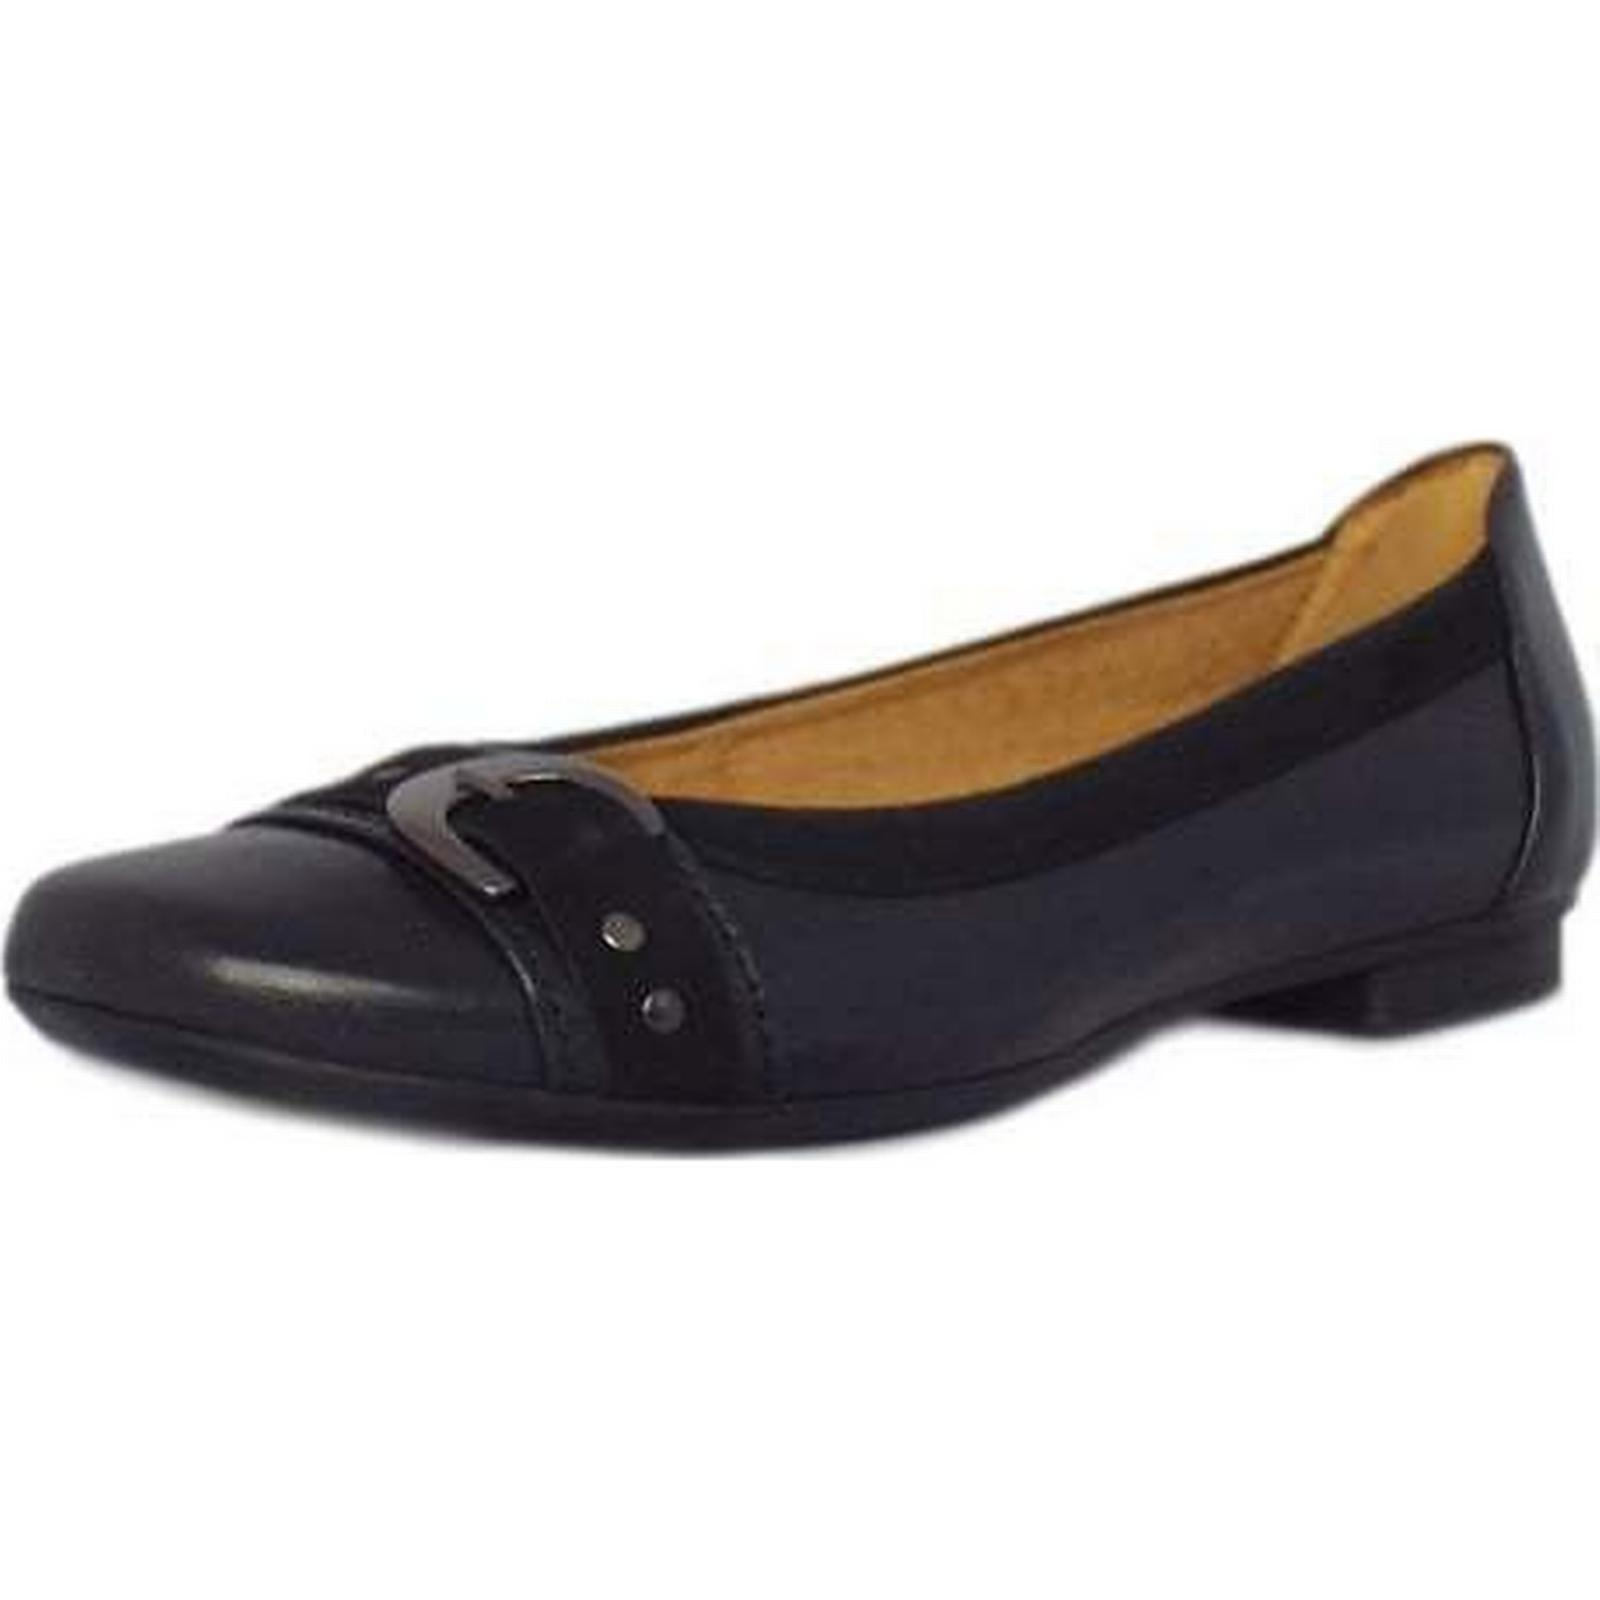 32ebe7570a54 Gabor INDIANA Size  GABOR LADIES SHOES 54 113 26 Size  INDIANA 6.5, Colour   NAVY b39381